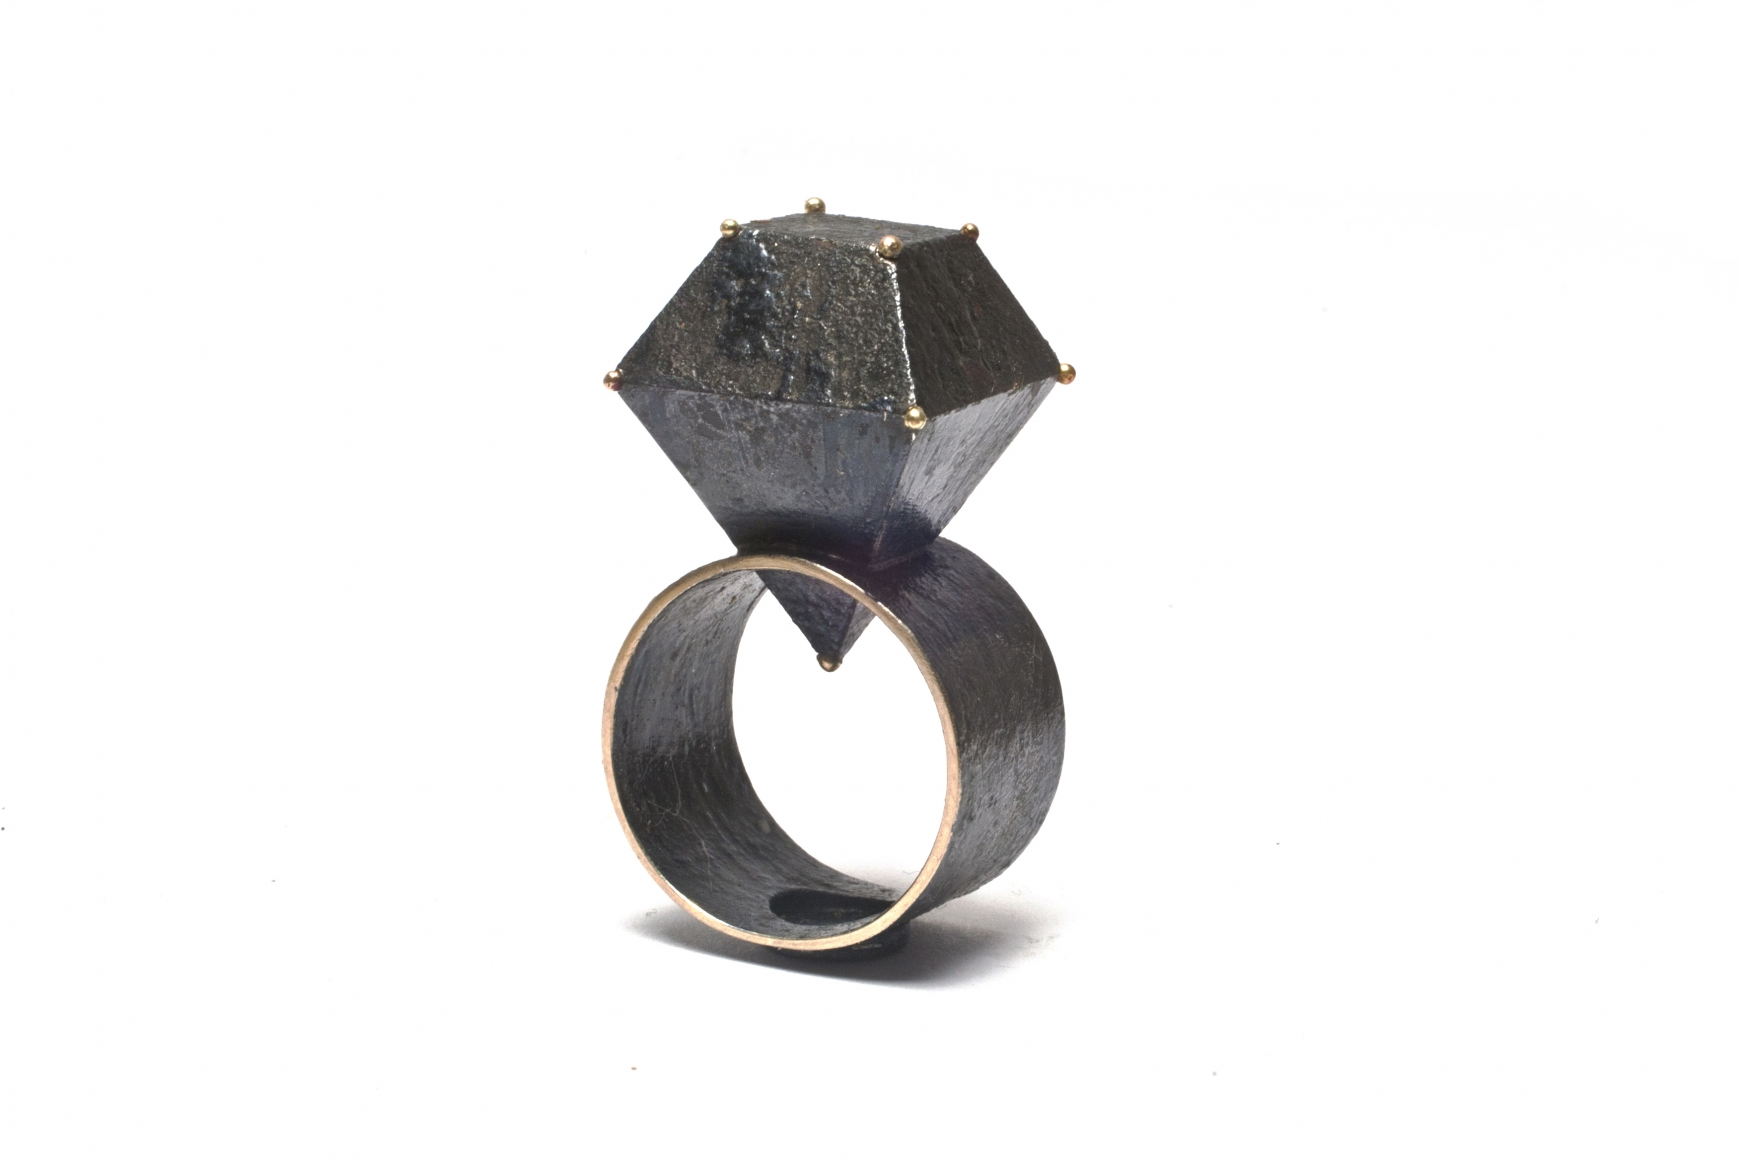 cathytimbrelljewellery the rings or beach semi incorporating using gold silver fused texturing reticulated series precious from messy contemporary stones and individual